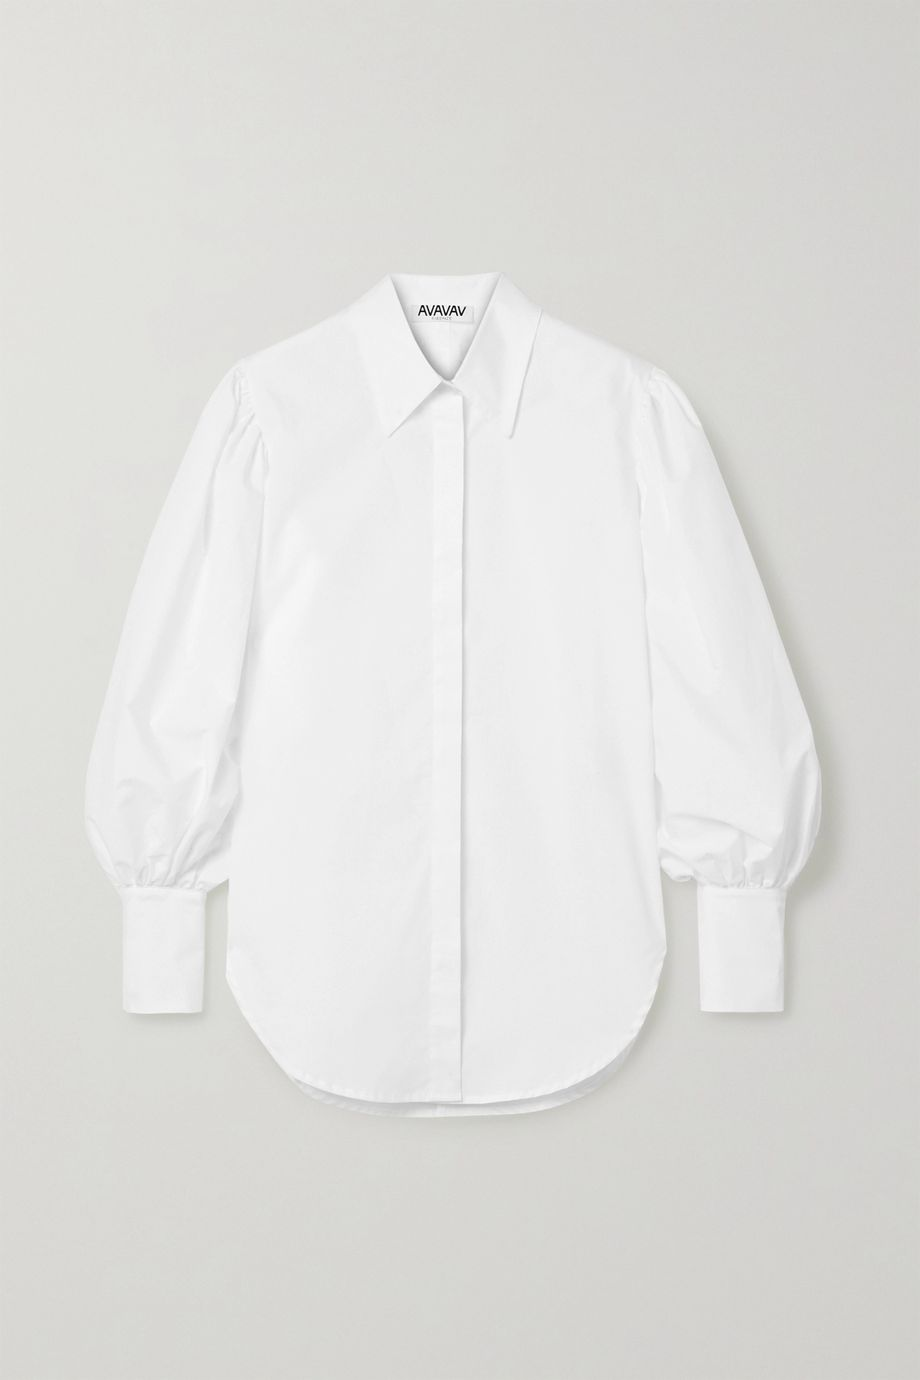 AVAVAV Oversized cotton-poplin shirt